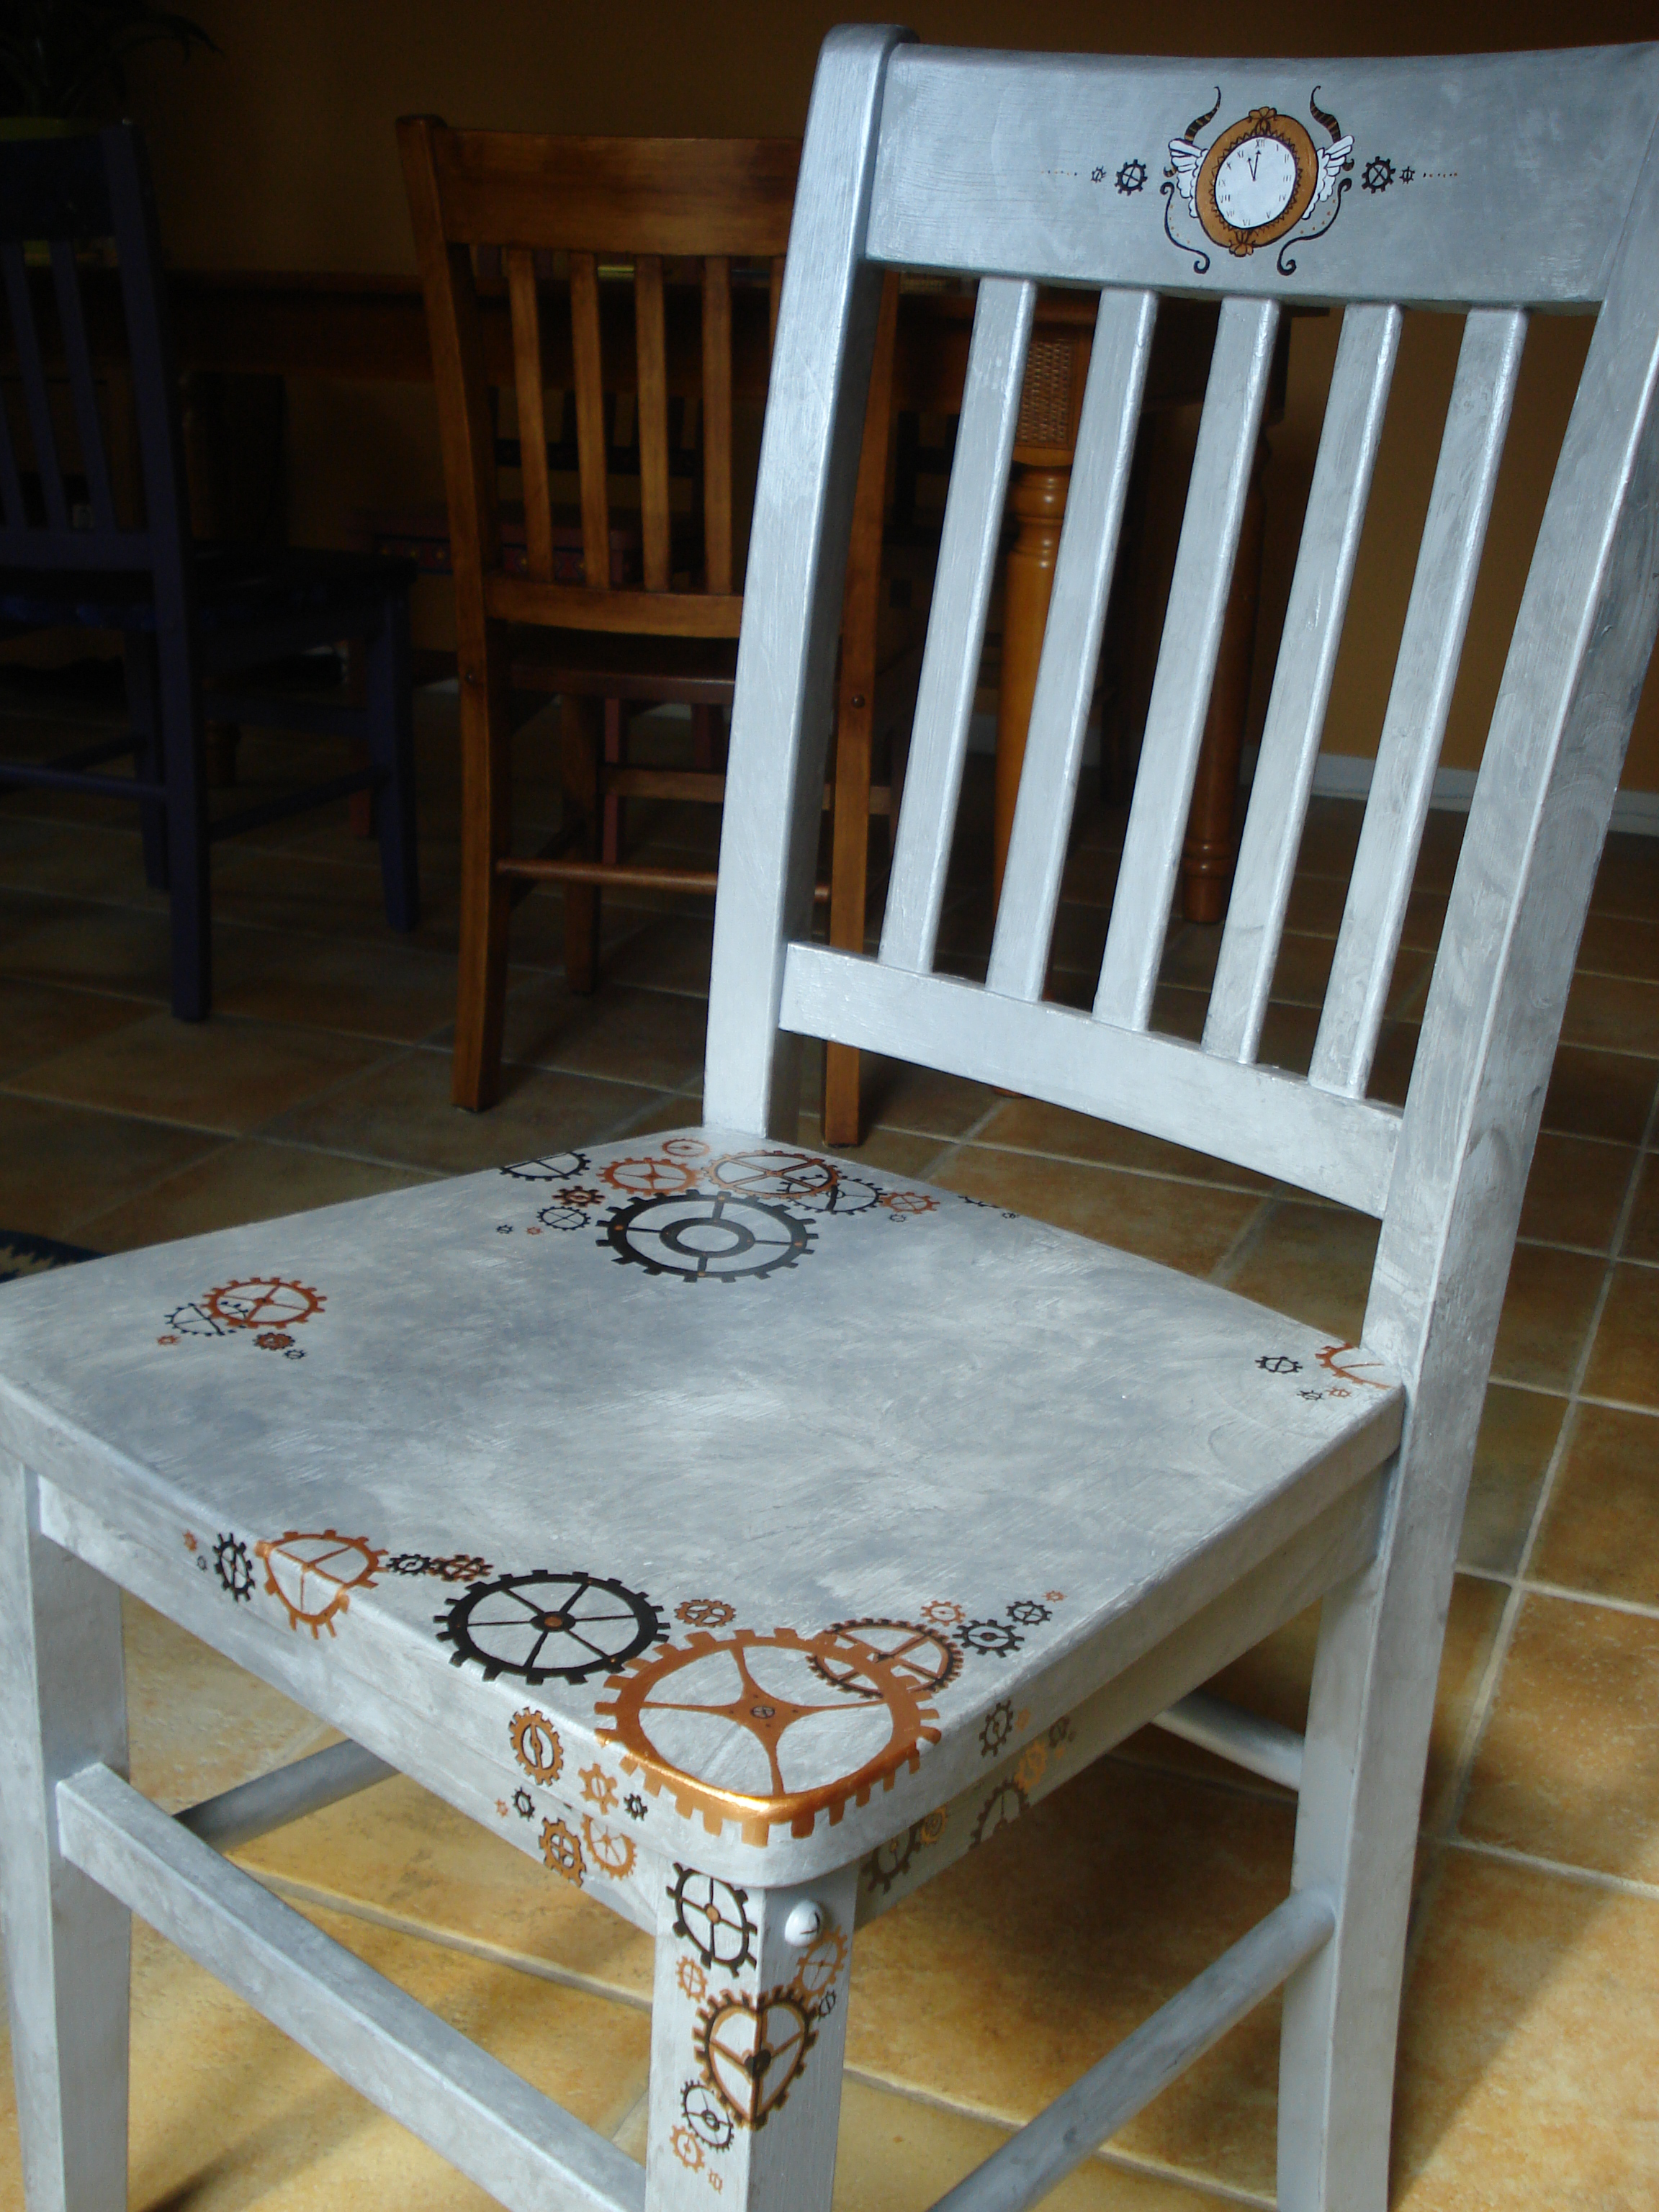 Filling the creative well part 1 for Steam punk chair